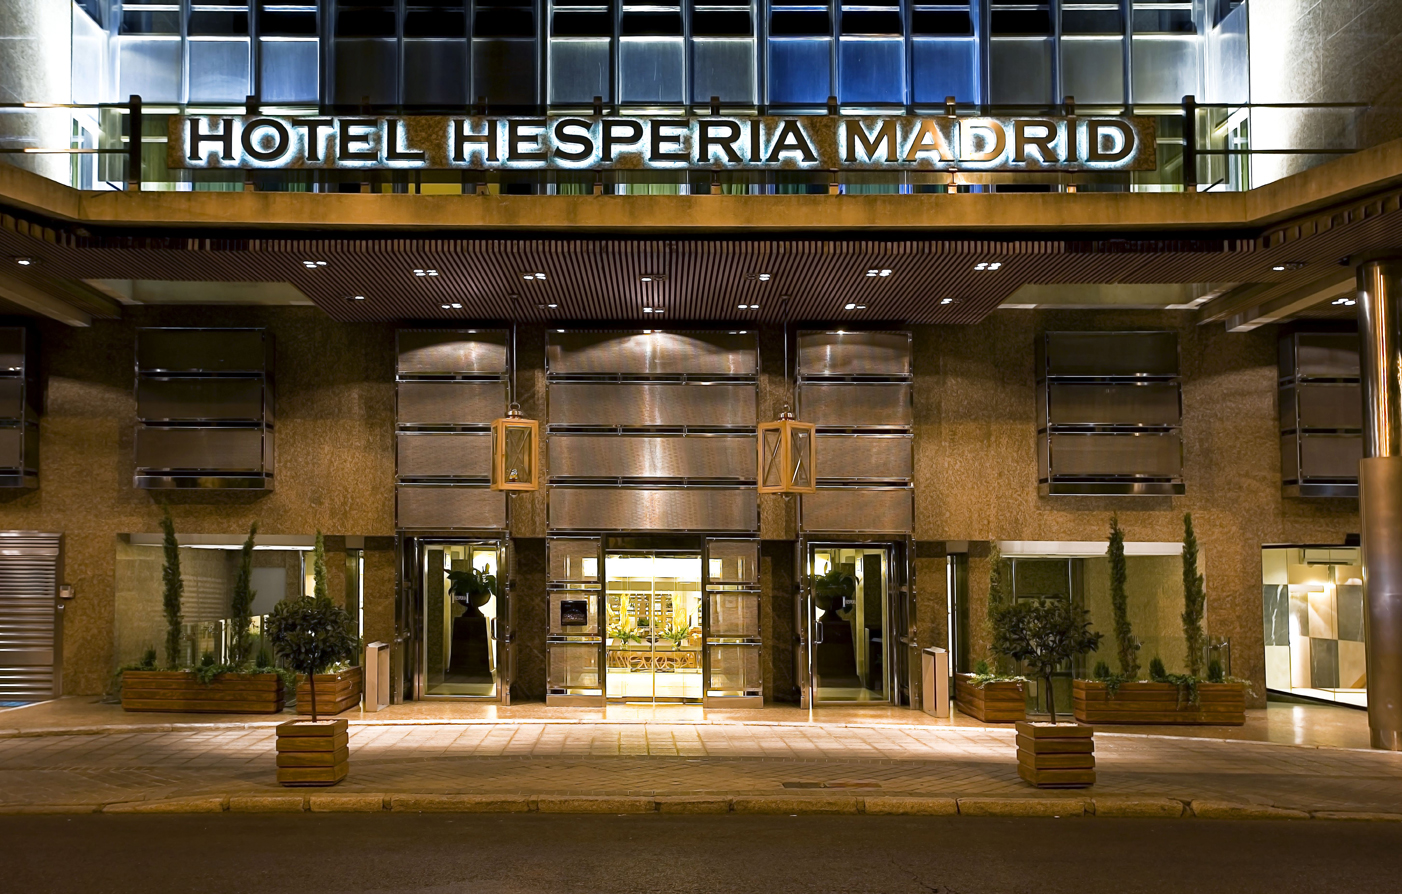 Luxury Madrid Hotel Hesperia Madrid Luxury Spain Hotels